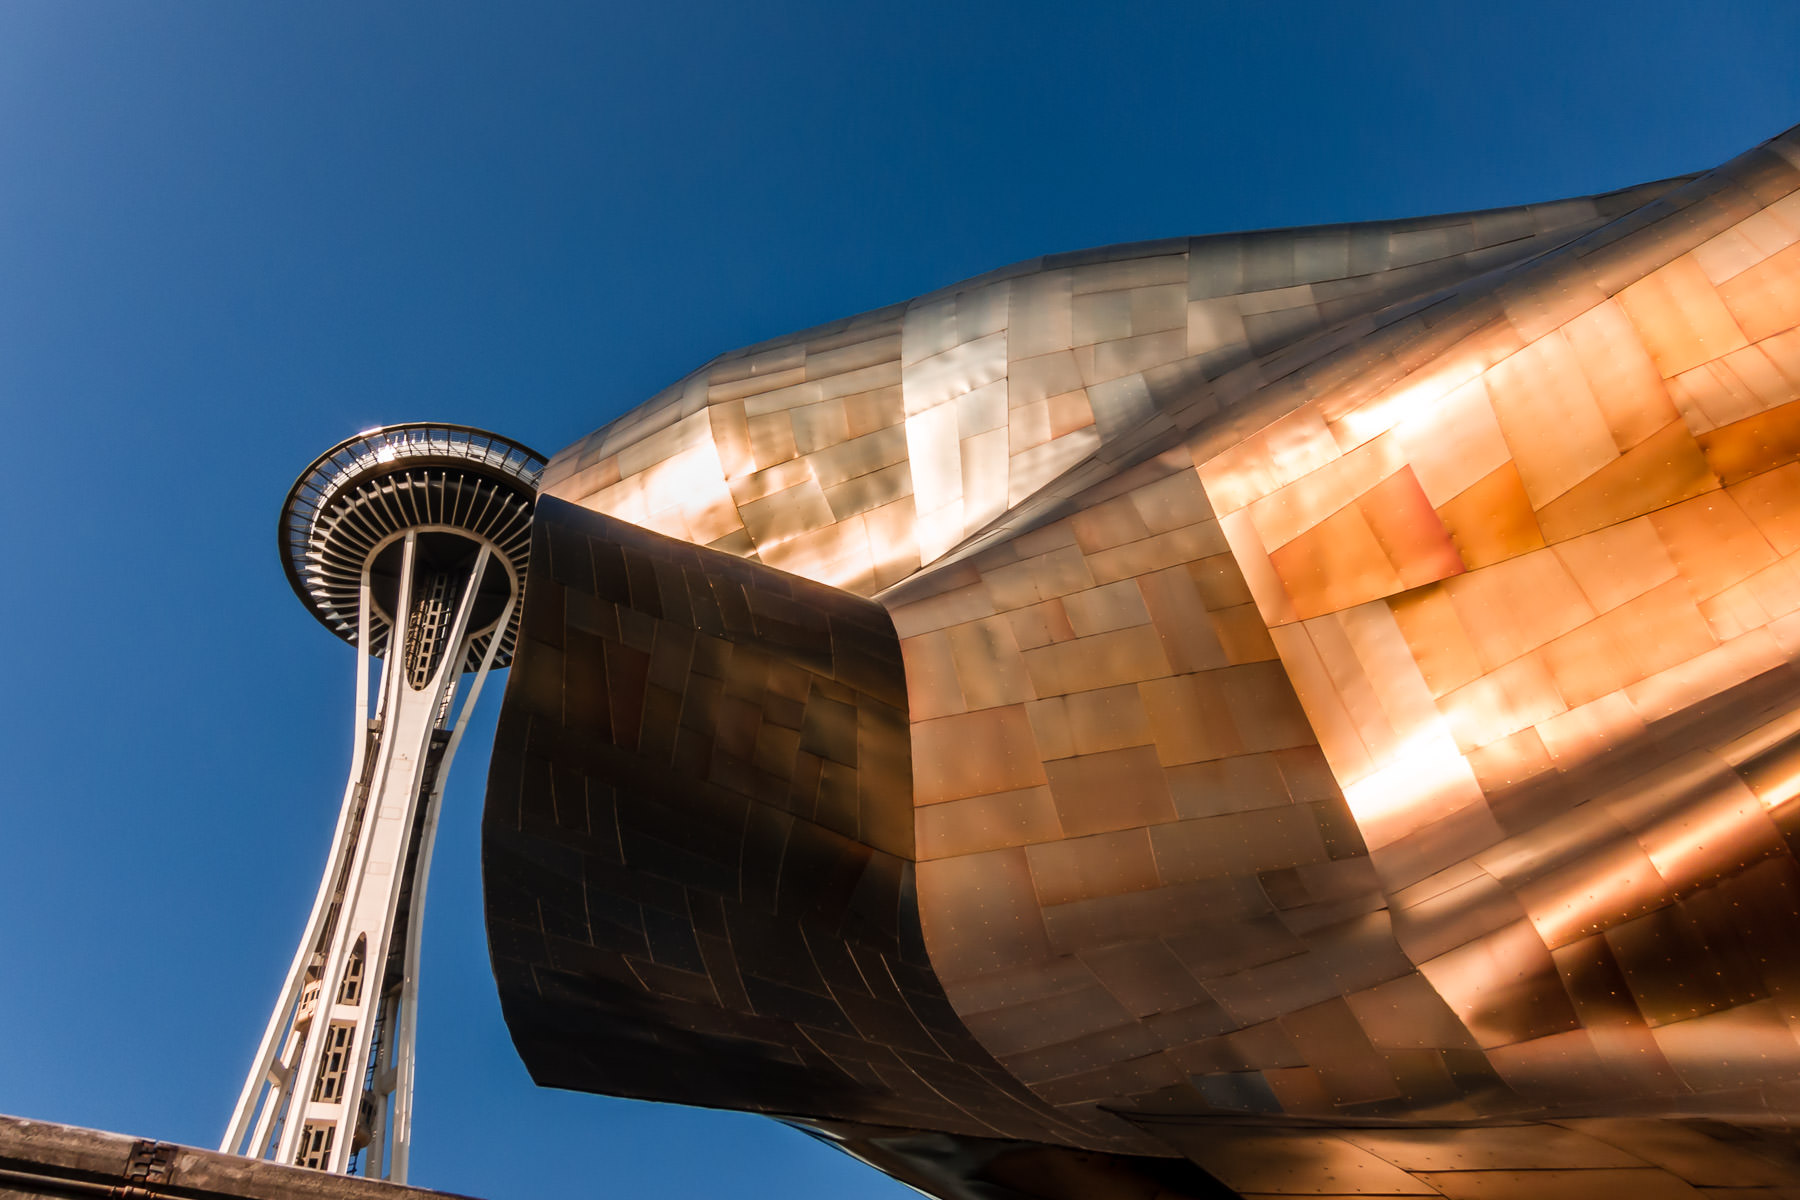 The Frank Gehry-designed Museum of Pop Culture (formerly the EMP Museum) obscures a portion of the adjacent Space Needle at the Seattle Center.